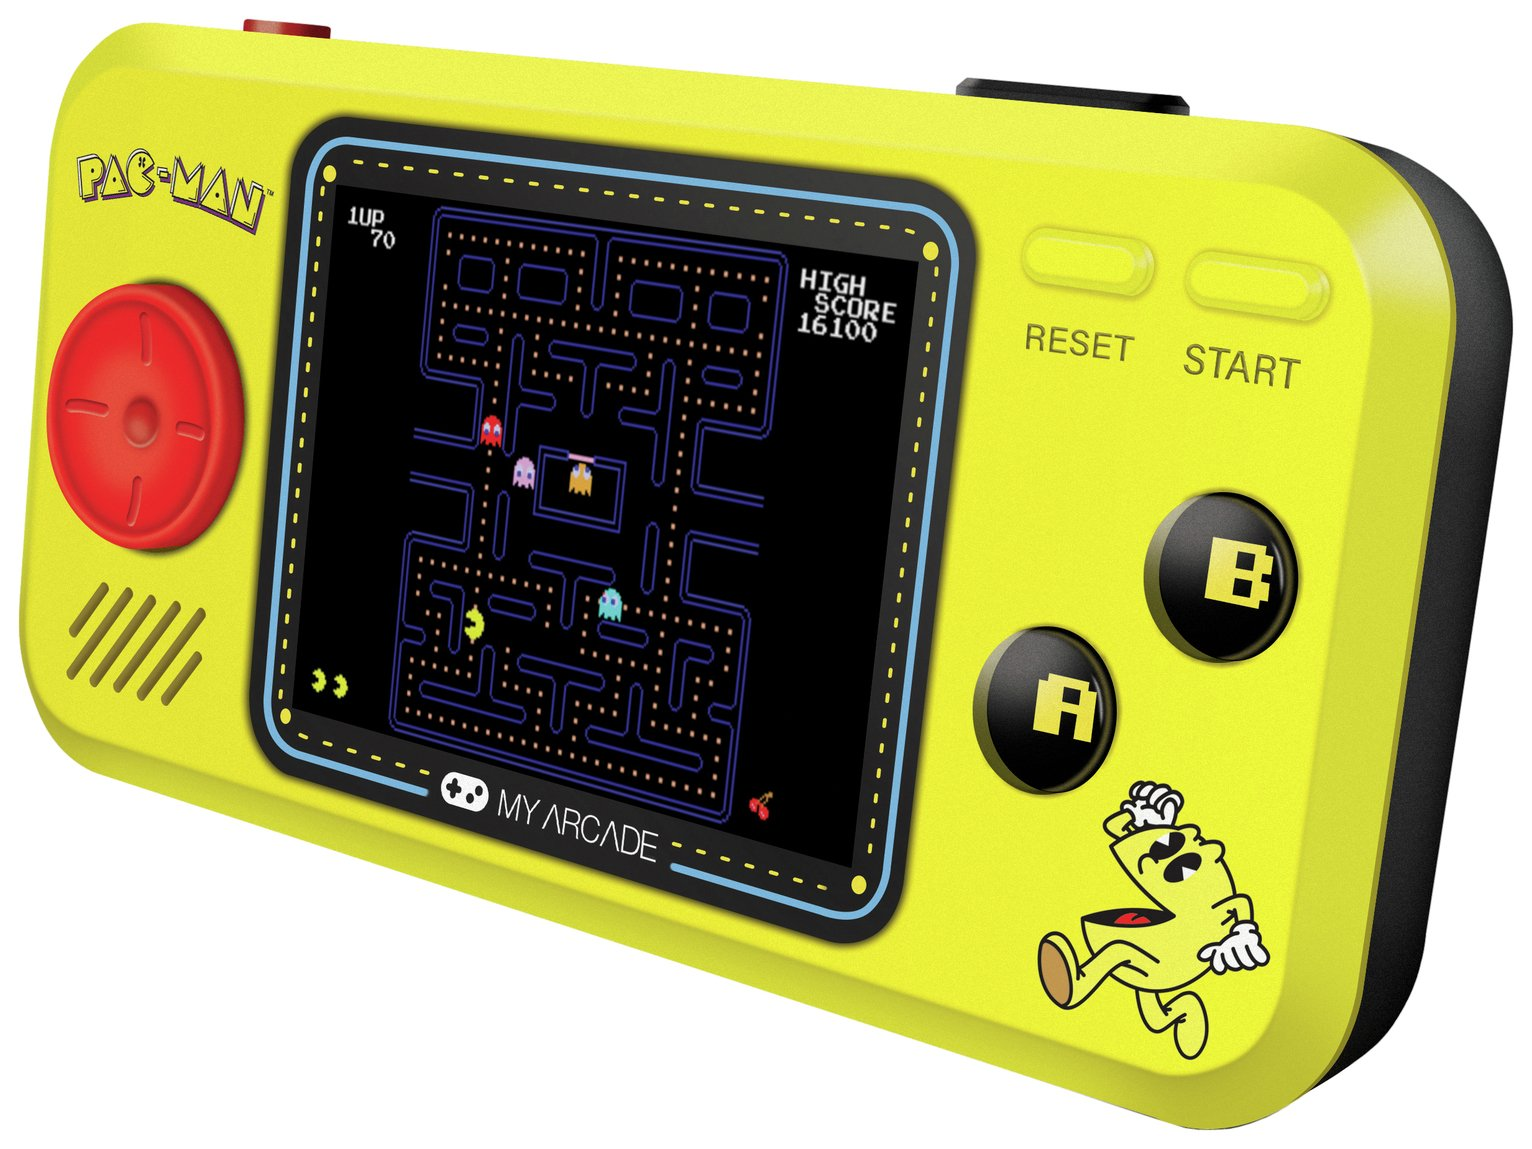 Pacman Handheld Gaming System review